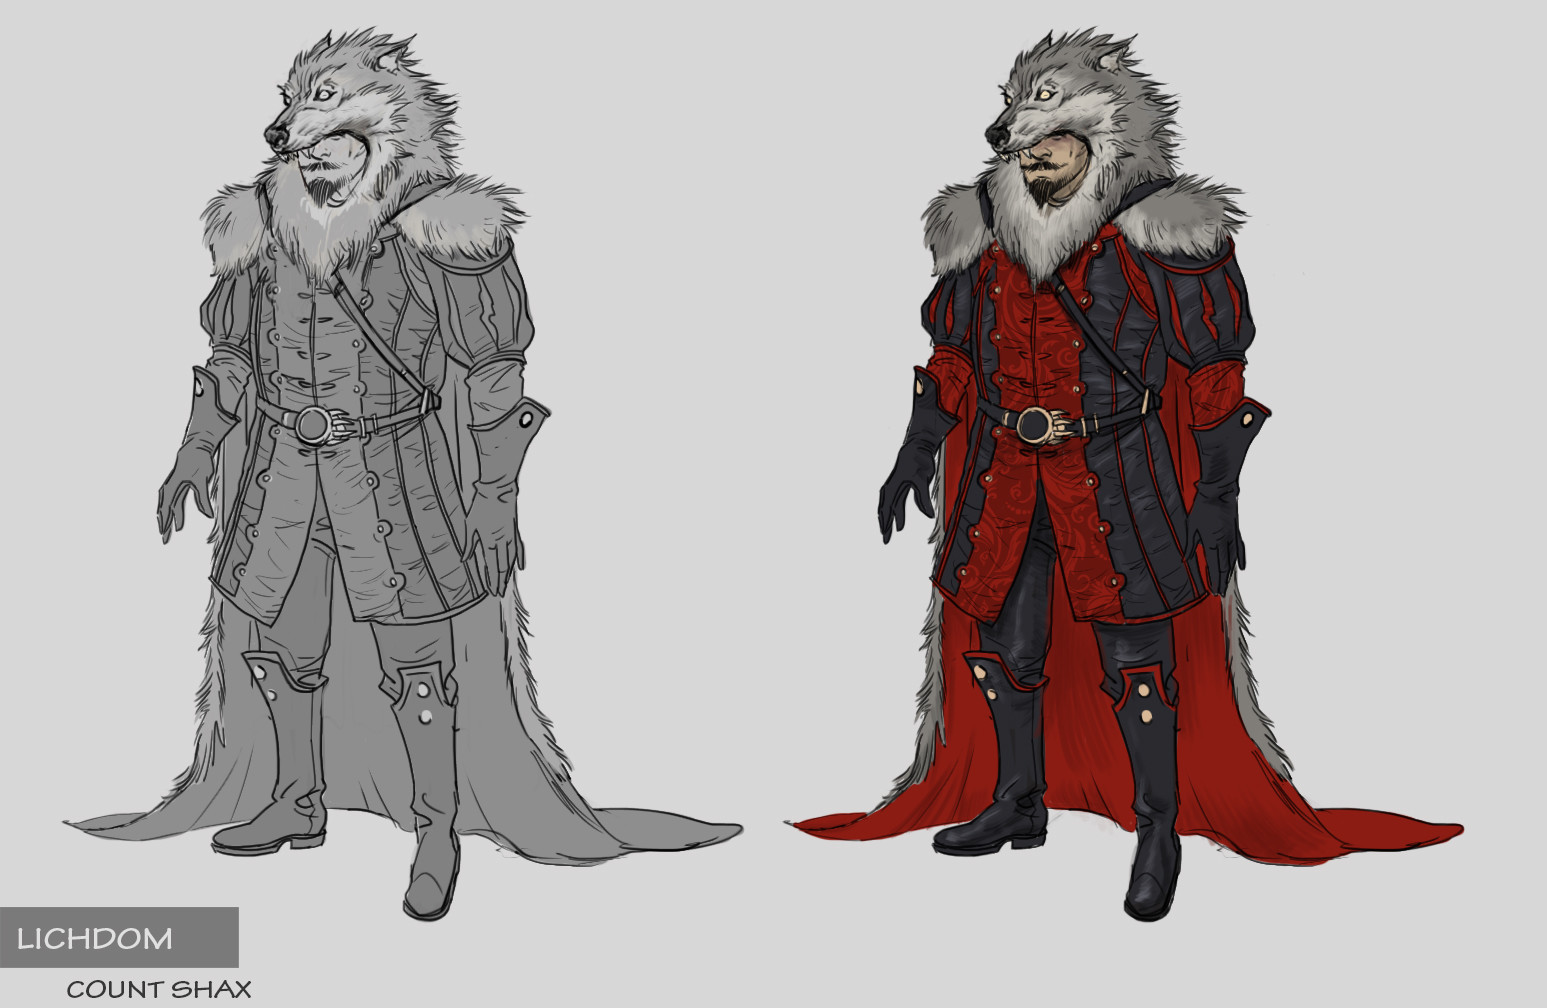 Count Shax concept